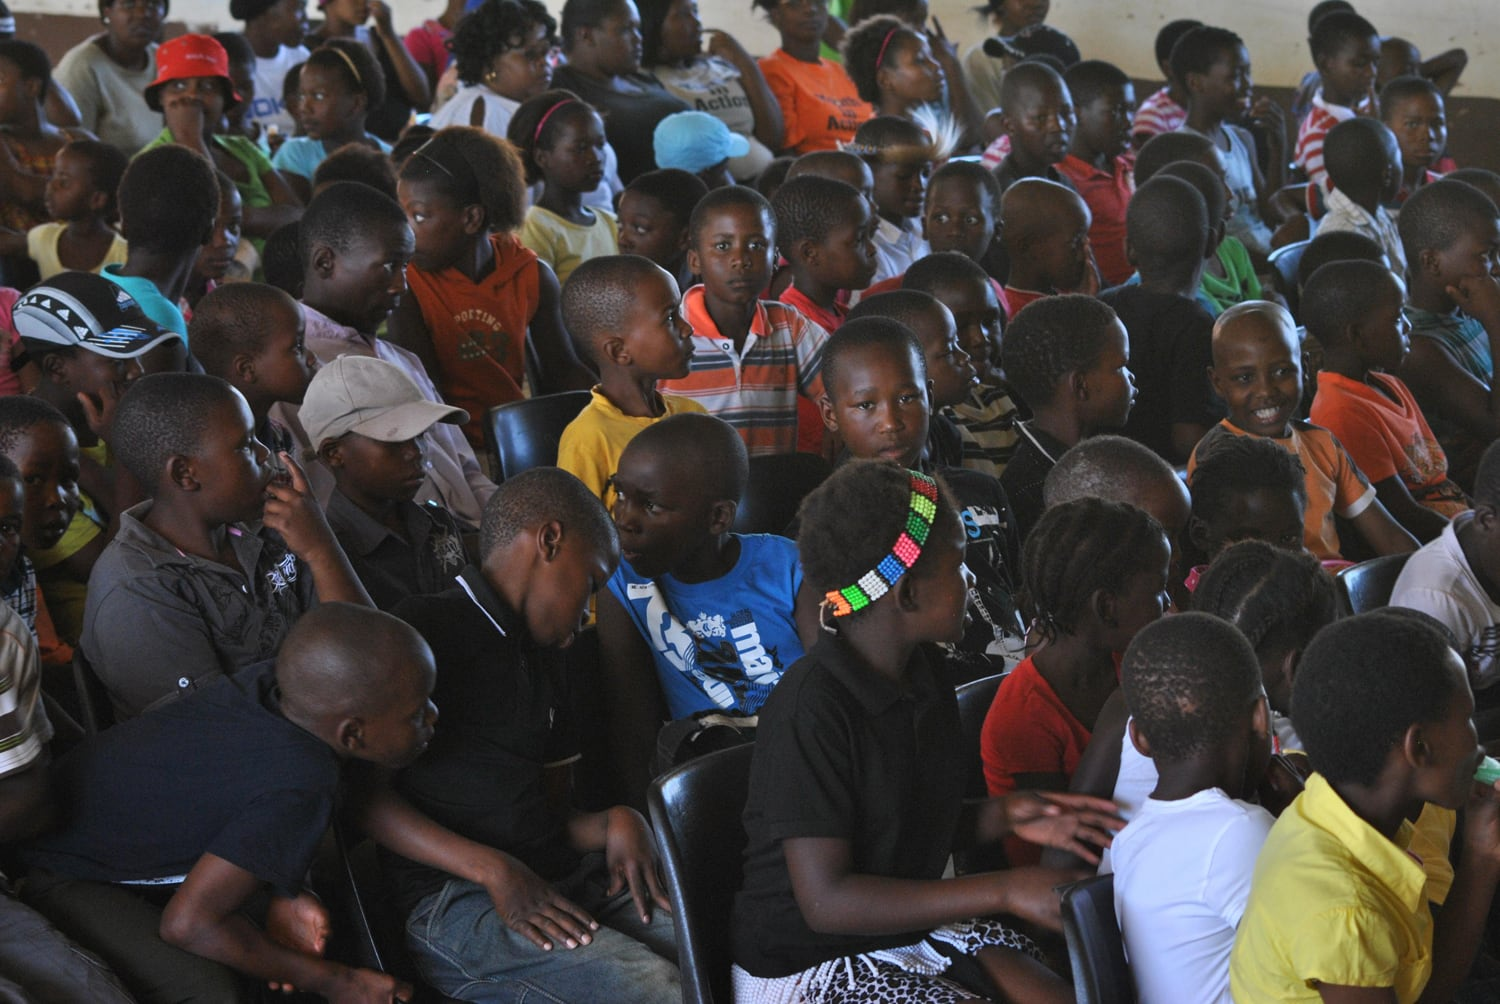 Children and Adolescents at the Youth Event Mfakantini of our Partnerorganisation Dlalanathi in South Africa 2011.